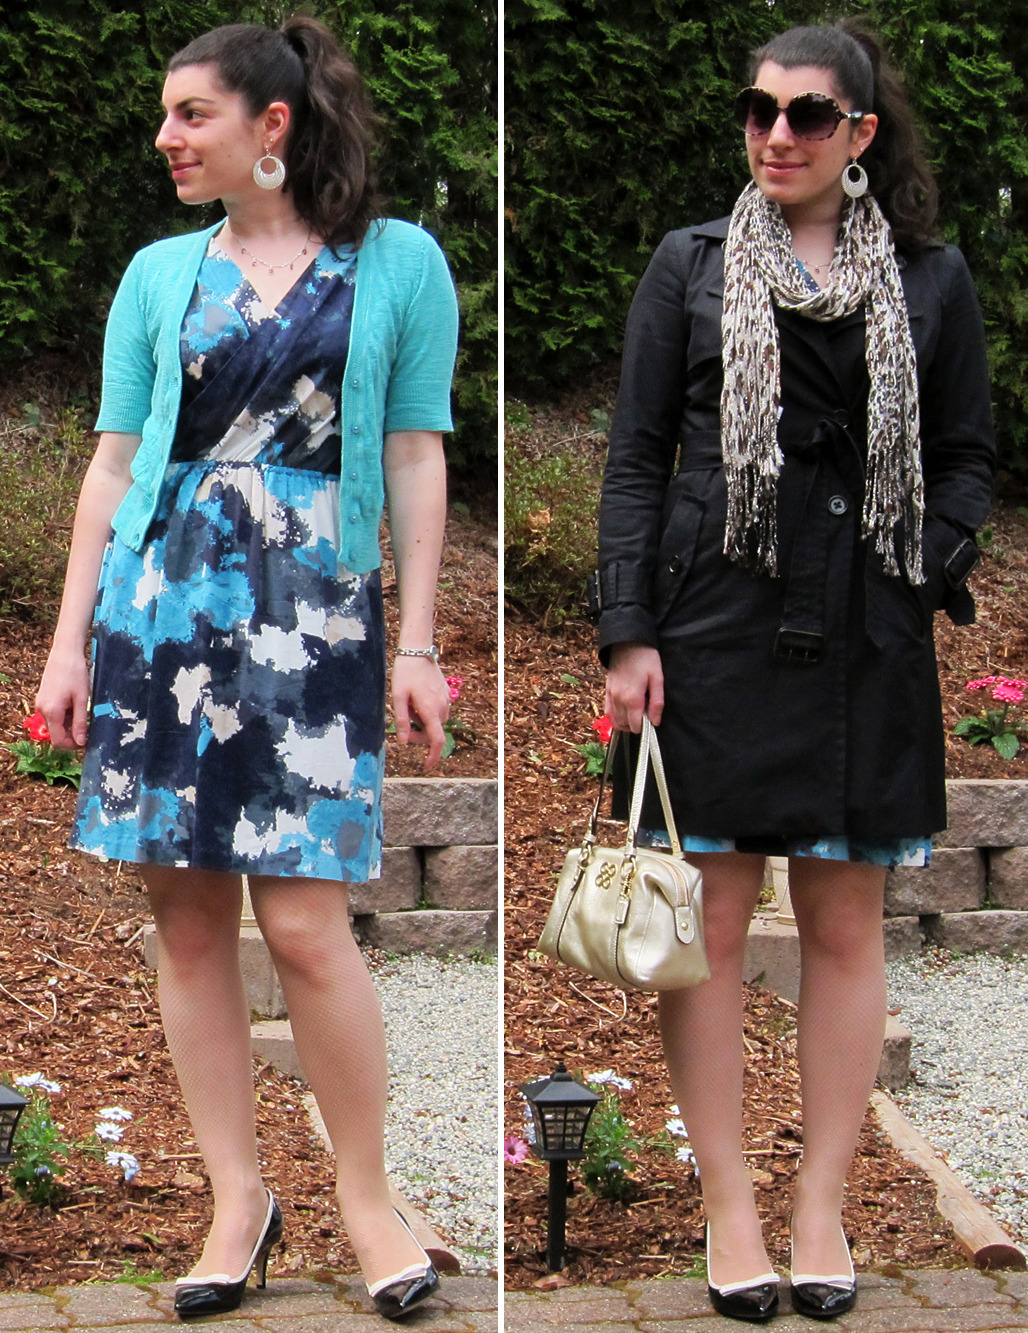 "04.08.2012 [sun] Worn to: errands (Walgreens, Albterstons, Fred Meyer), Easter dinner @ my folks' Dress, cardigan: TargetTights: DKNY (gift)Heels: Anne Klein (via DSW)Earrings, neckalce: giftsWatch: Fossil (gift)Trench: Banana Republic (via YLF swap)Scarf: Dress BarnPurse: Coach (gift)Shades: Forever 21  Behind the outfit:Today's dinner isn't necessarily a dressy affair, but I know that my folks do tend to dress a bit nicer for Easter dinner as it's one of the few holidays my mom celebrates. The pastel colors of Easter don't do me any favors so I decided to wear something lady-like that hints at pastels, but with colors that are still saturated enough for my coloring. It was most definitely too cold for this outfit BUT I wanted to wear it so I did! I started with the cardigan, which is the closest to a pastel clearly-non-casual thing in my wardrobe (recently pulled out for spring/summer). After looking over my dress options, I chose this one because I liked how the blue looked with the aqua cardigan (though a sweater dress would have been more weather appropriate). I wore nude microfishnets to mitigate a bit of the coldness, and chose my most lady-like heels to complete the ""Easter vibe"". Normally I like to wear a belt with this dress because leaving the exposed elasticy band really bugs me, but today I decided to just leave it be. I chose silver accessories to play into the cool colorway for the indoor look, and gold/leopard to contrast the cool colorway for the outdoor look. And hair up so it would say out of my food ^^"